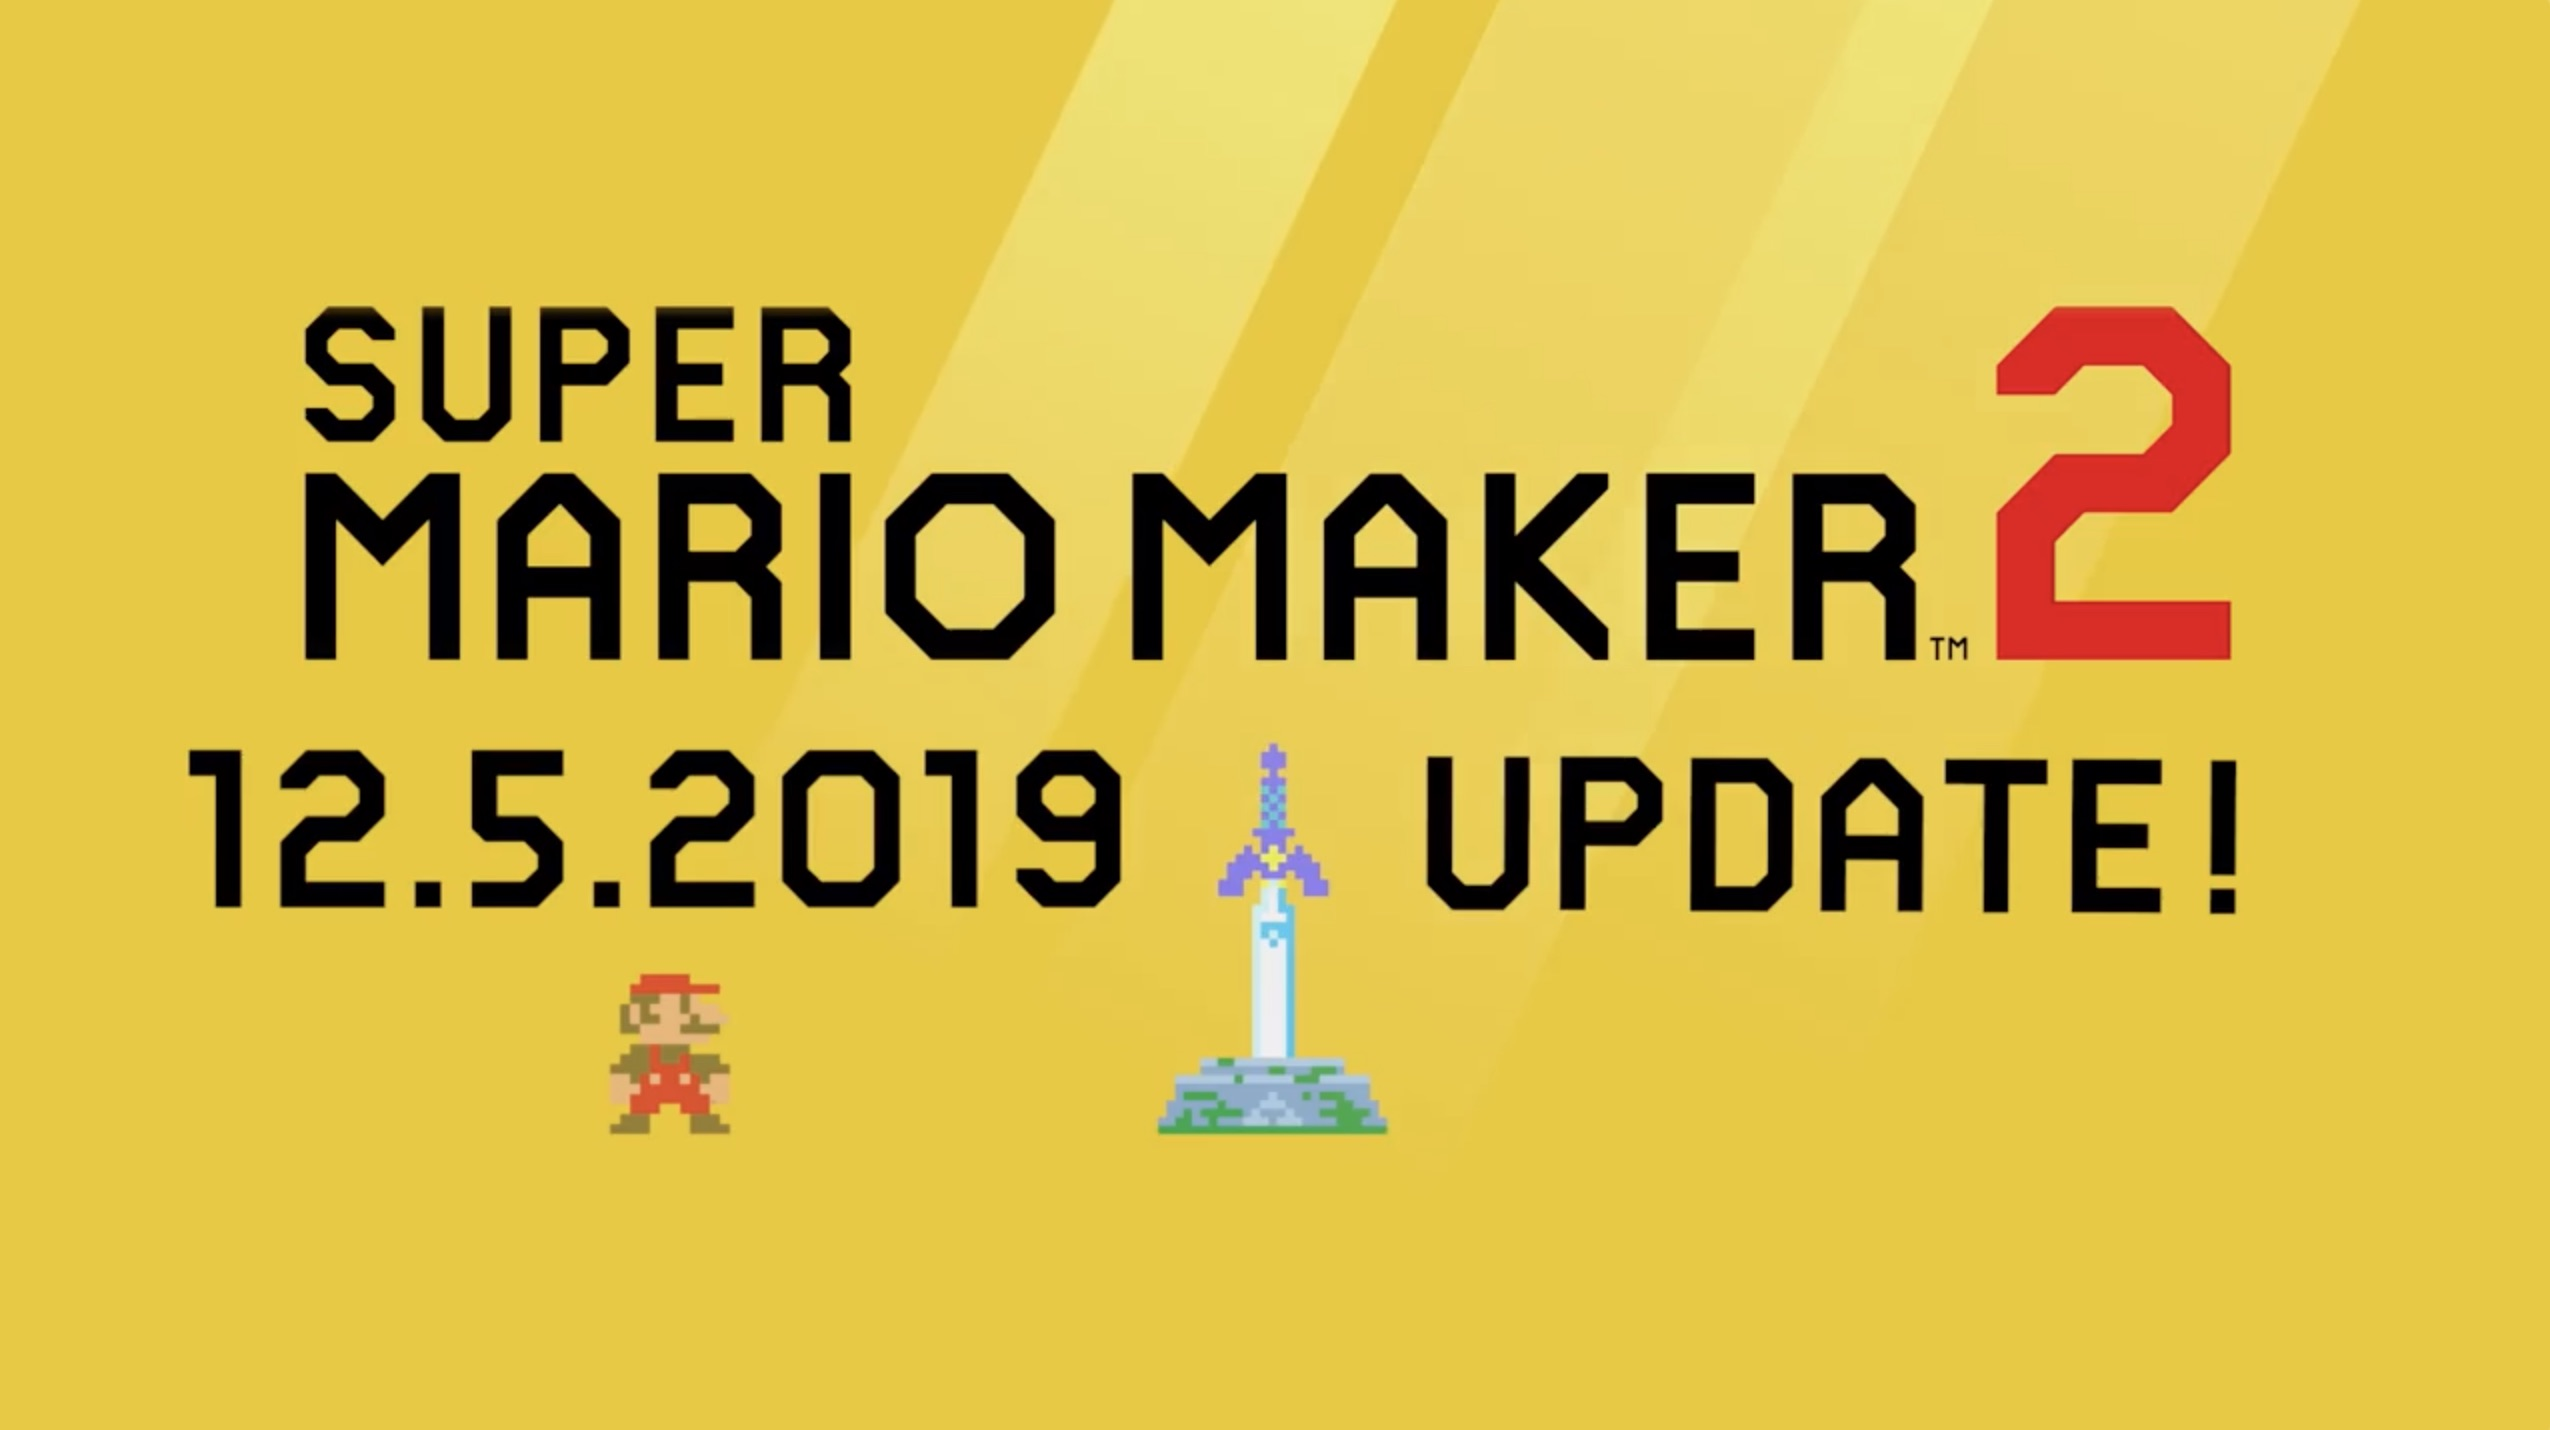 Super Mario Maker 2 Update